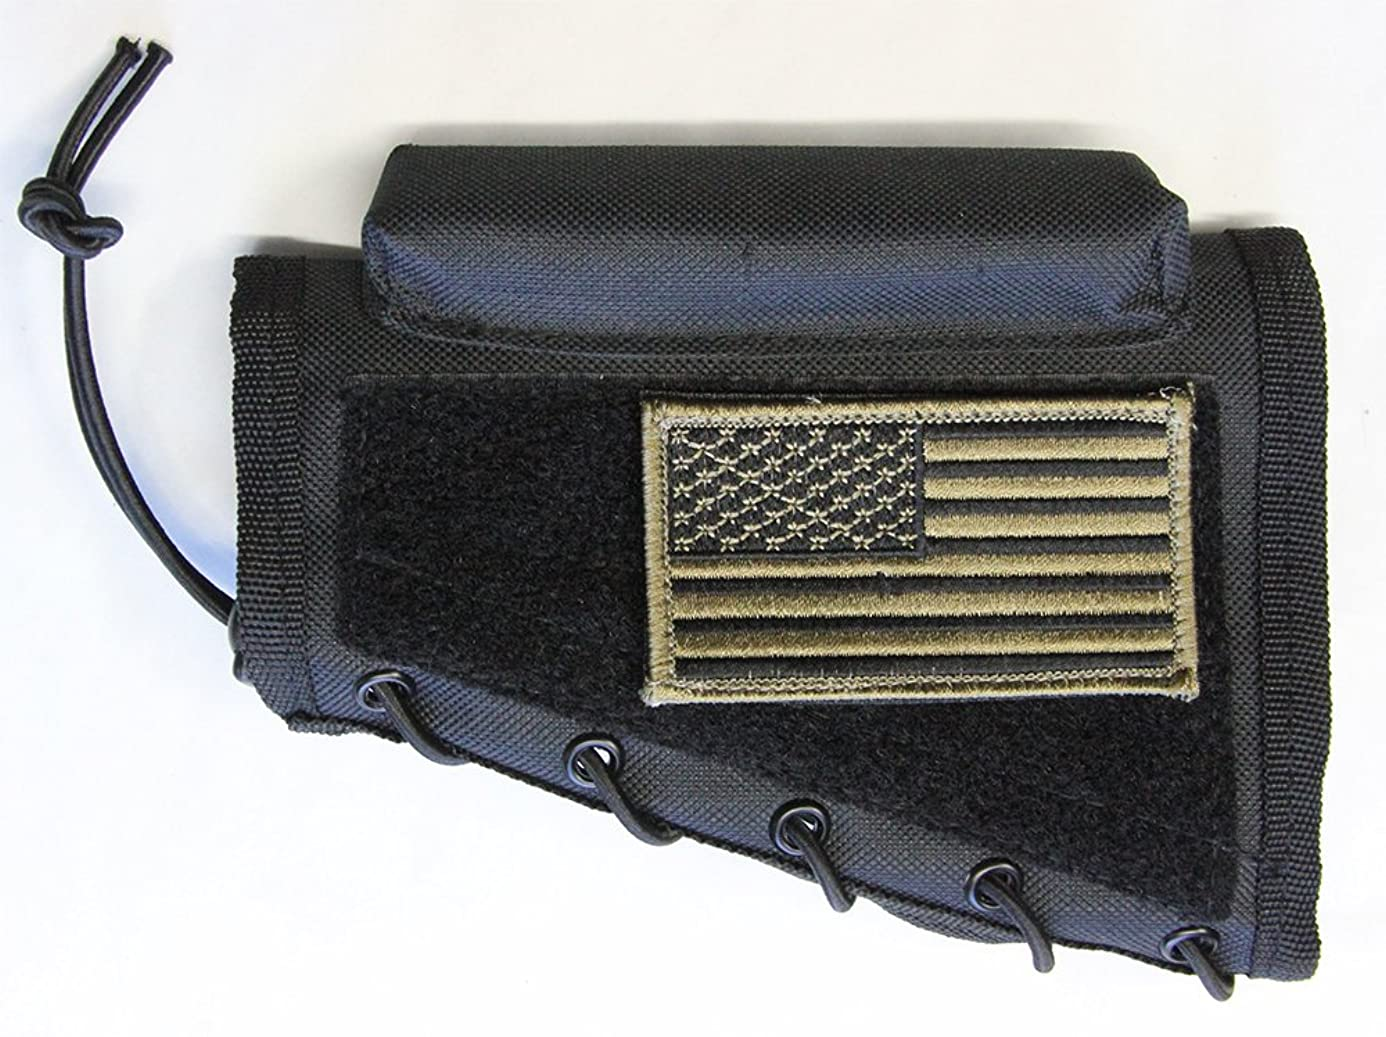 M1SURPLUS Black Color Cheek Rest + Patriot USA Flag Morale Patch + Detachable Pouch Fits Ruger 10/22 77/22 M77 American Mini14 Mini30 Ranch Gunsite Scout Rifle